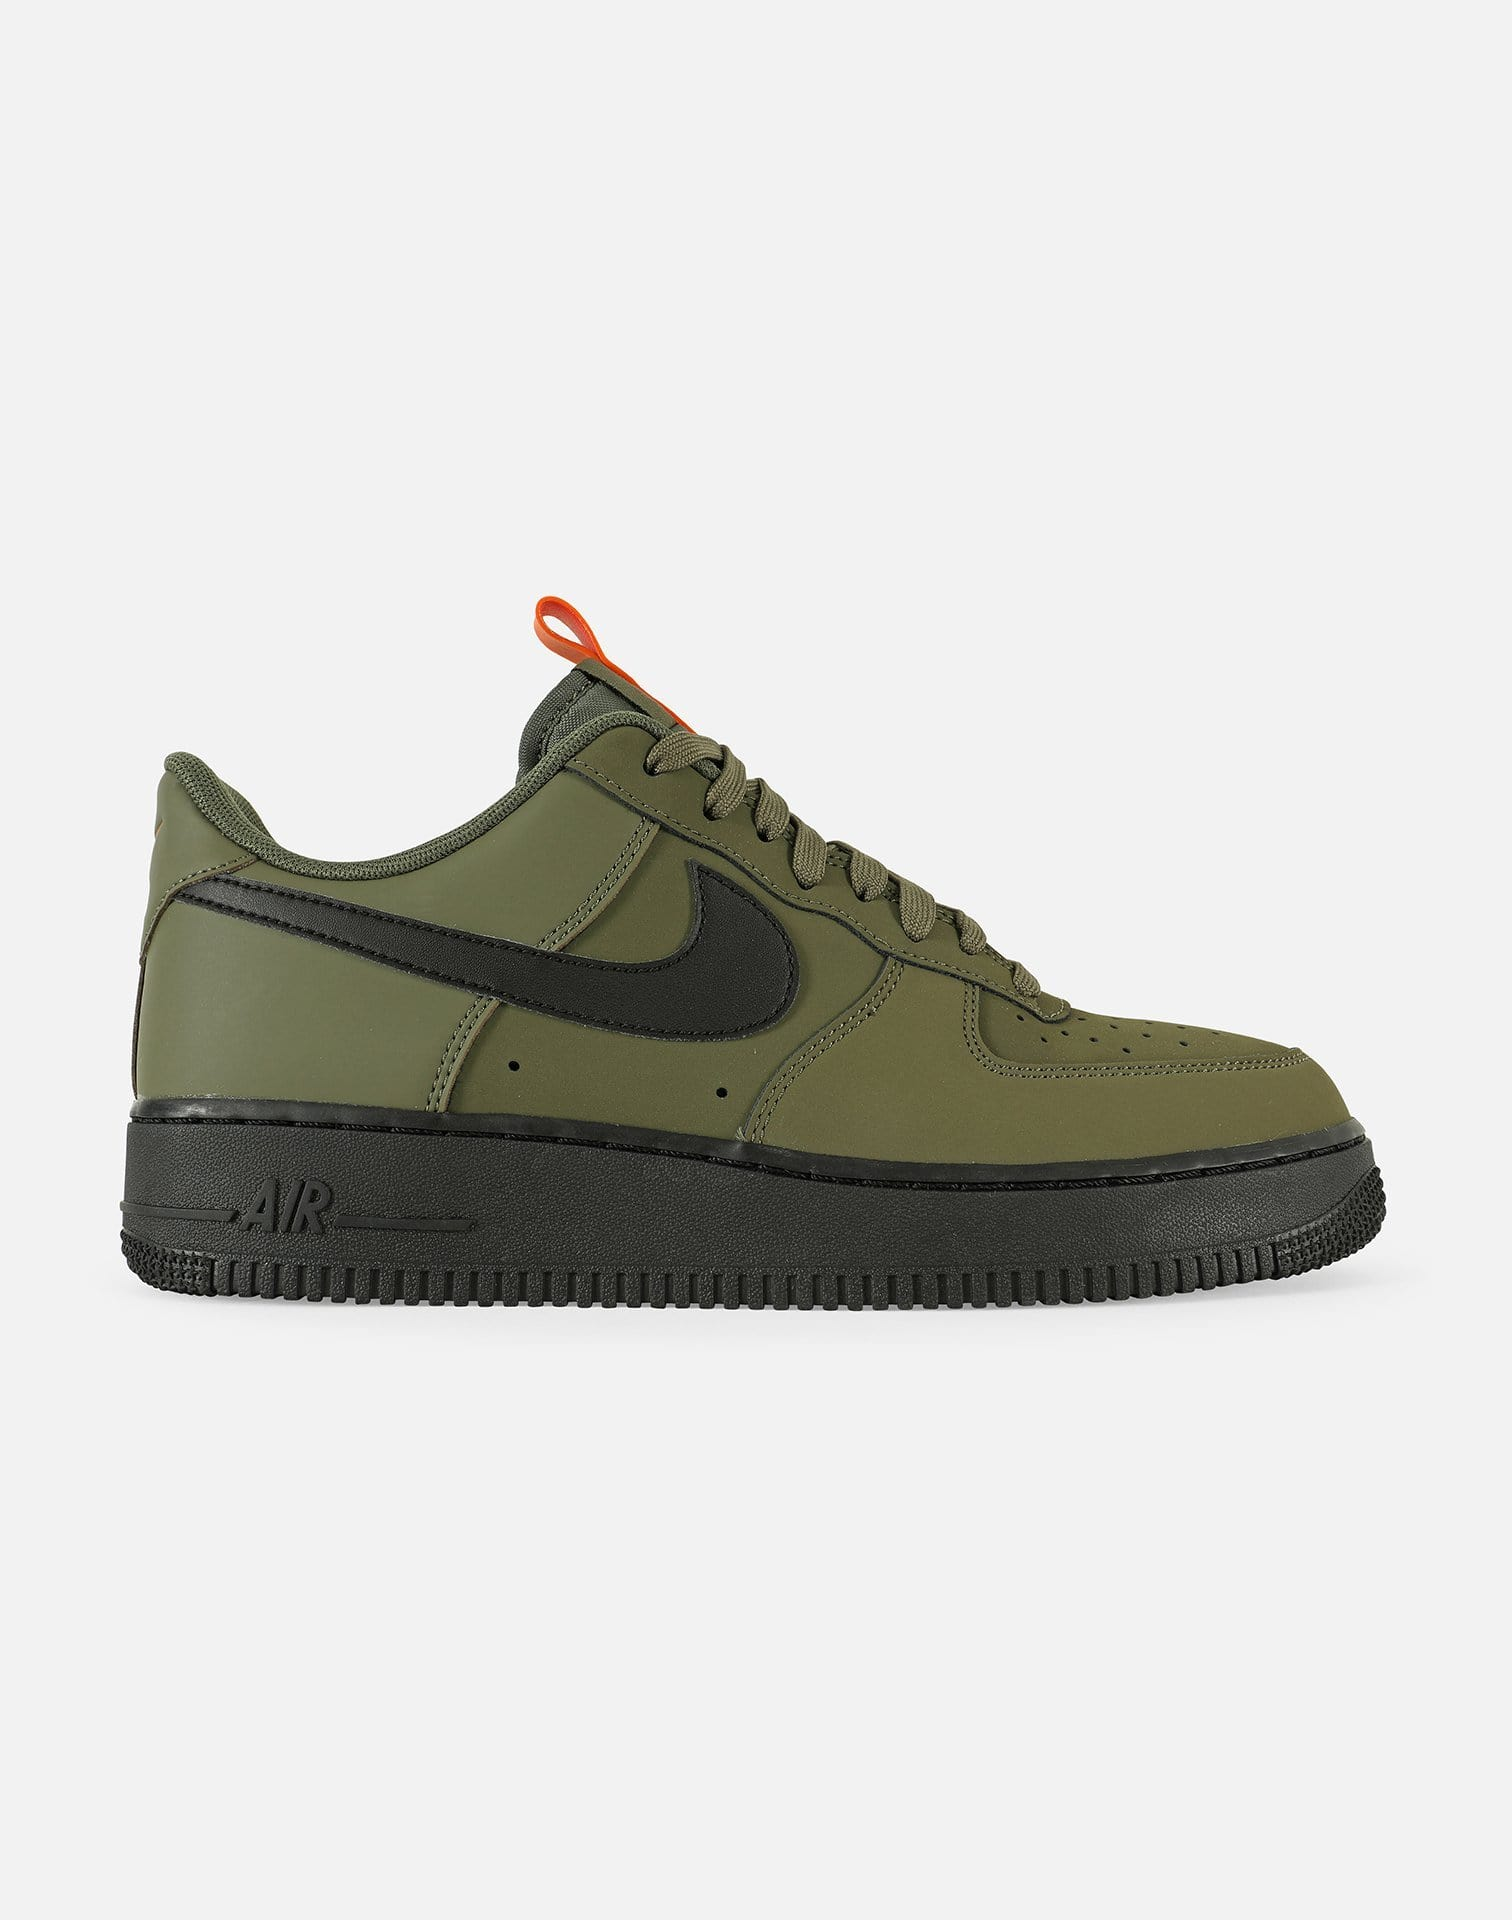 Salto natural desbloquear  AIR FORCE 1 LOW – DTLR